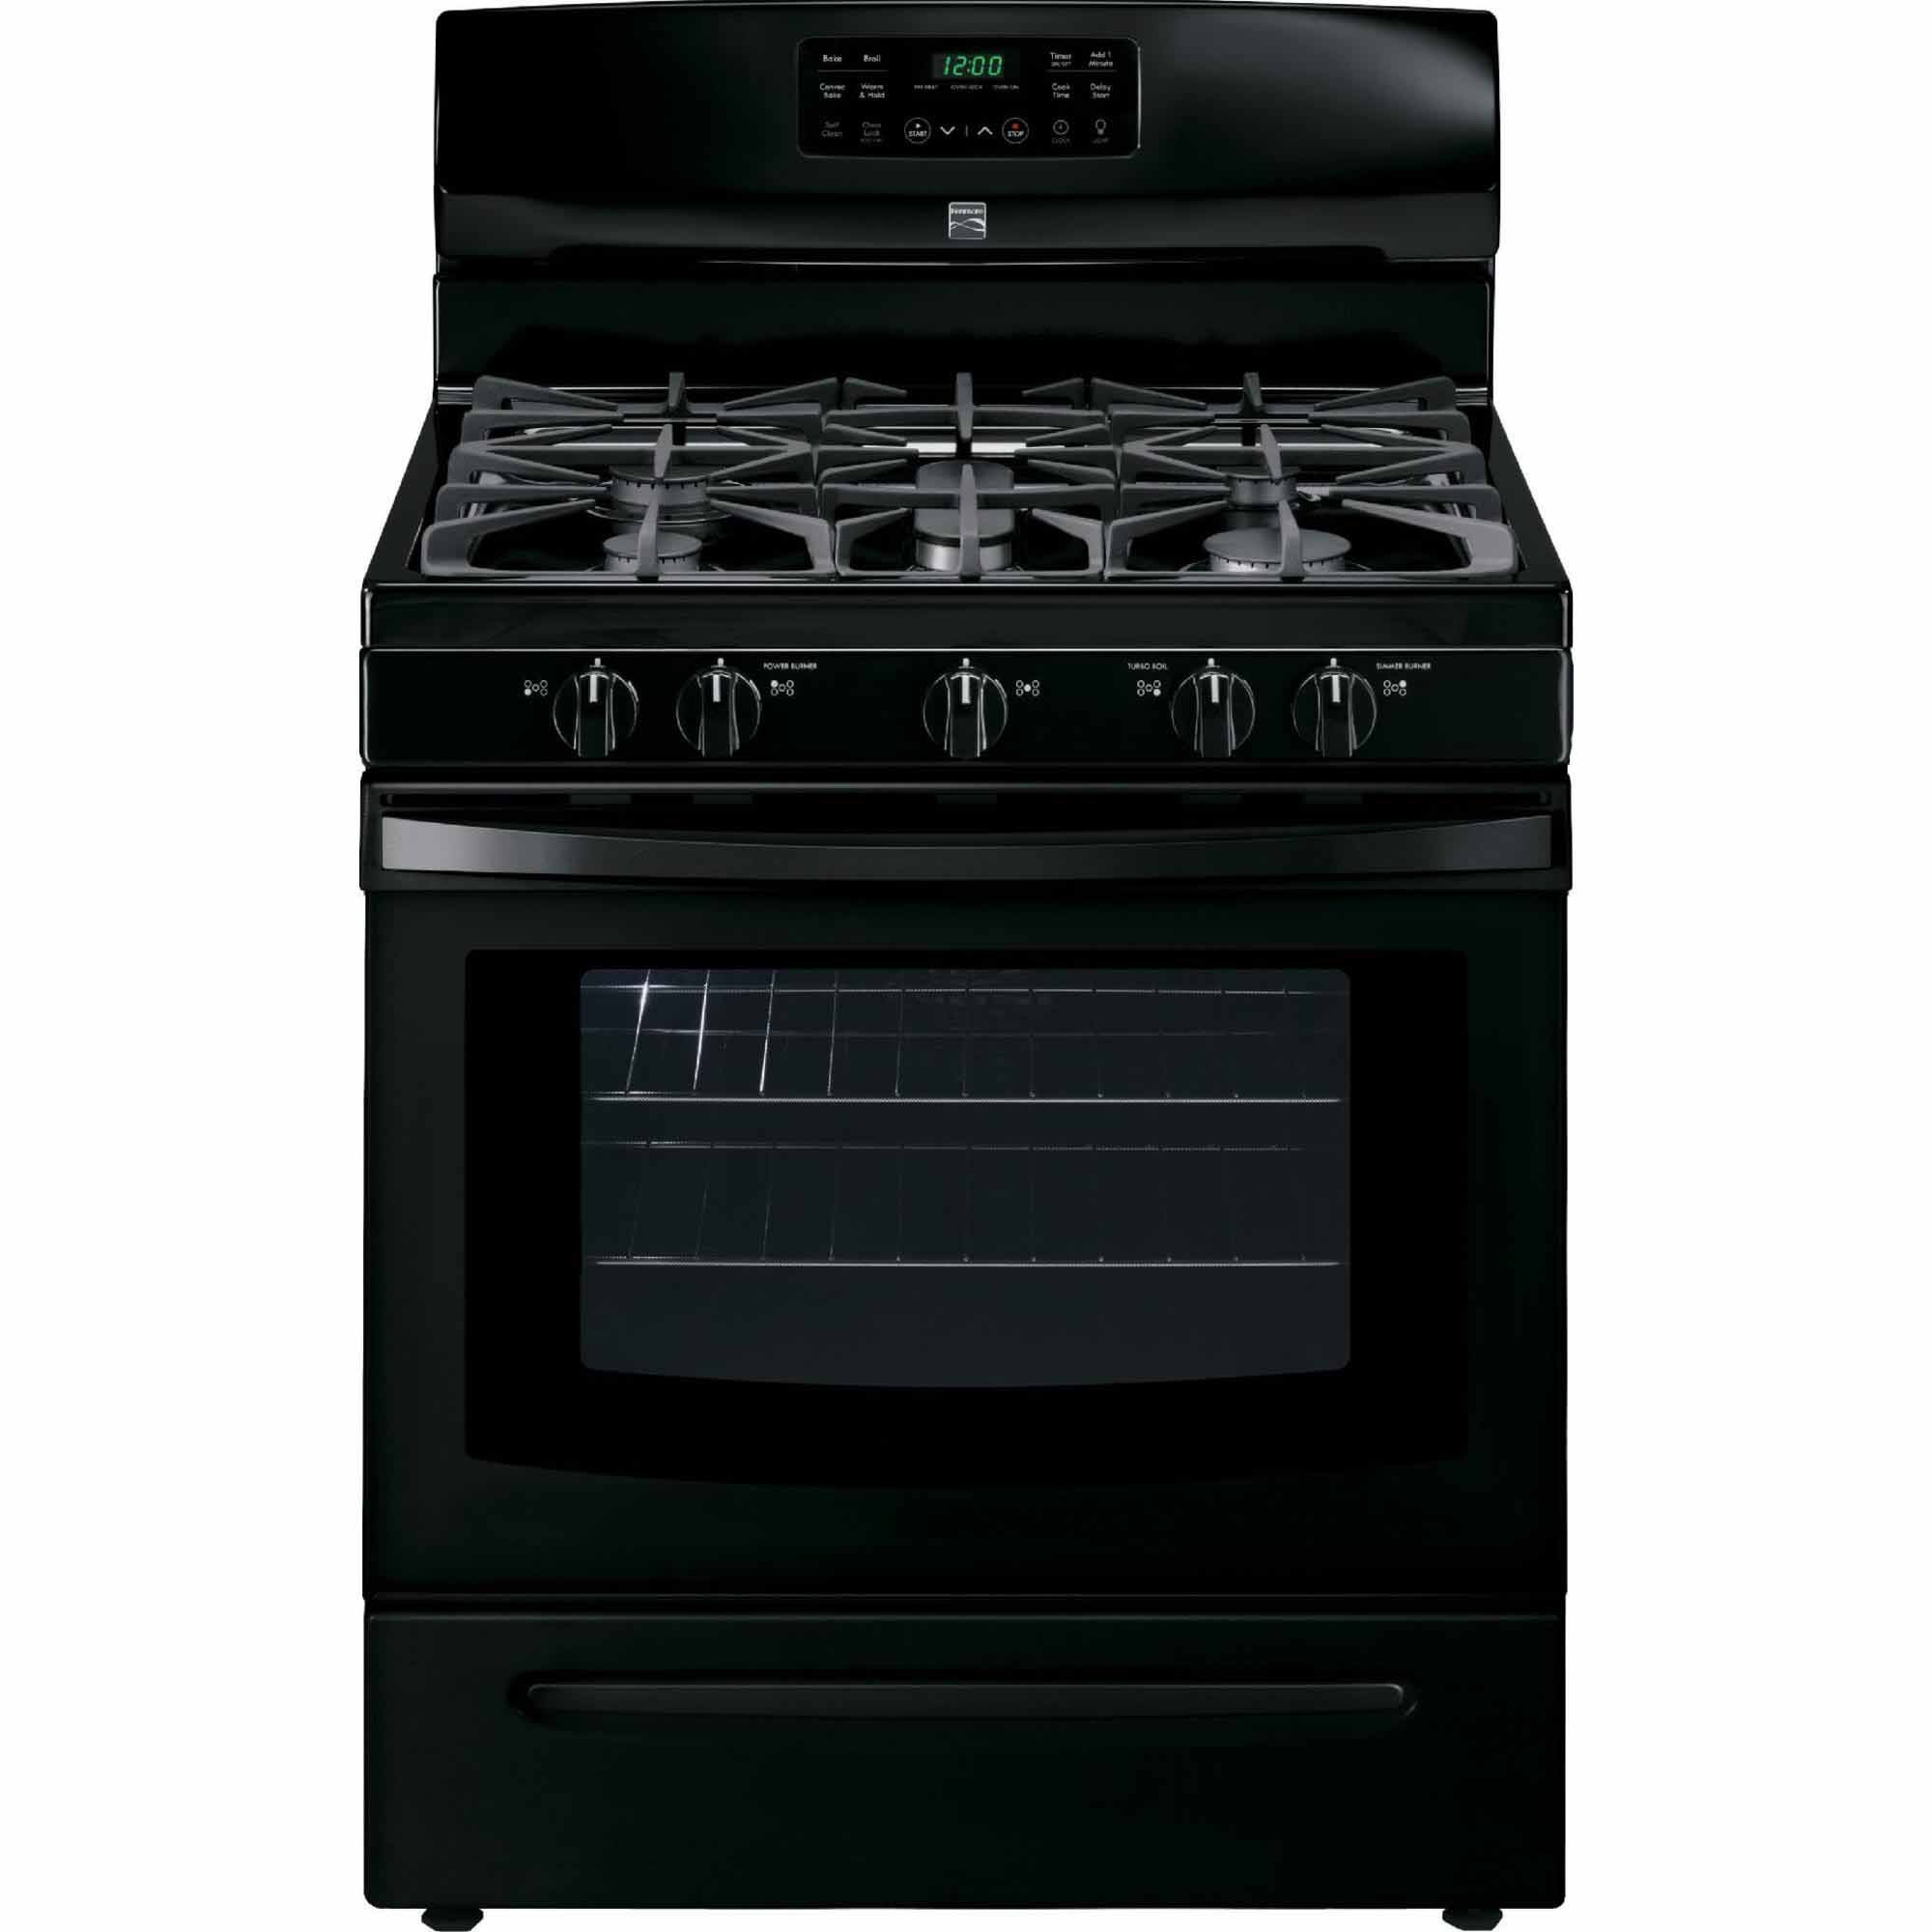 Kenmore 74239 5.0 cu. ft. Self Clean Gas Range in Black, includes delivery and hookup (Available in select cities only)